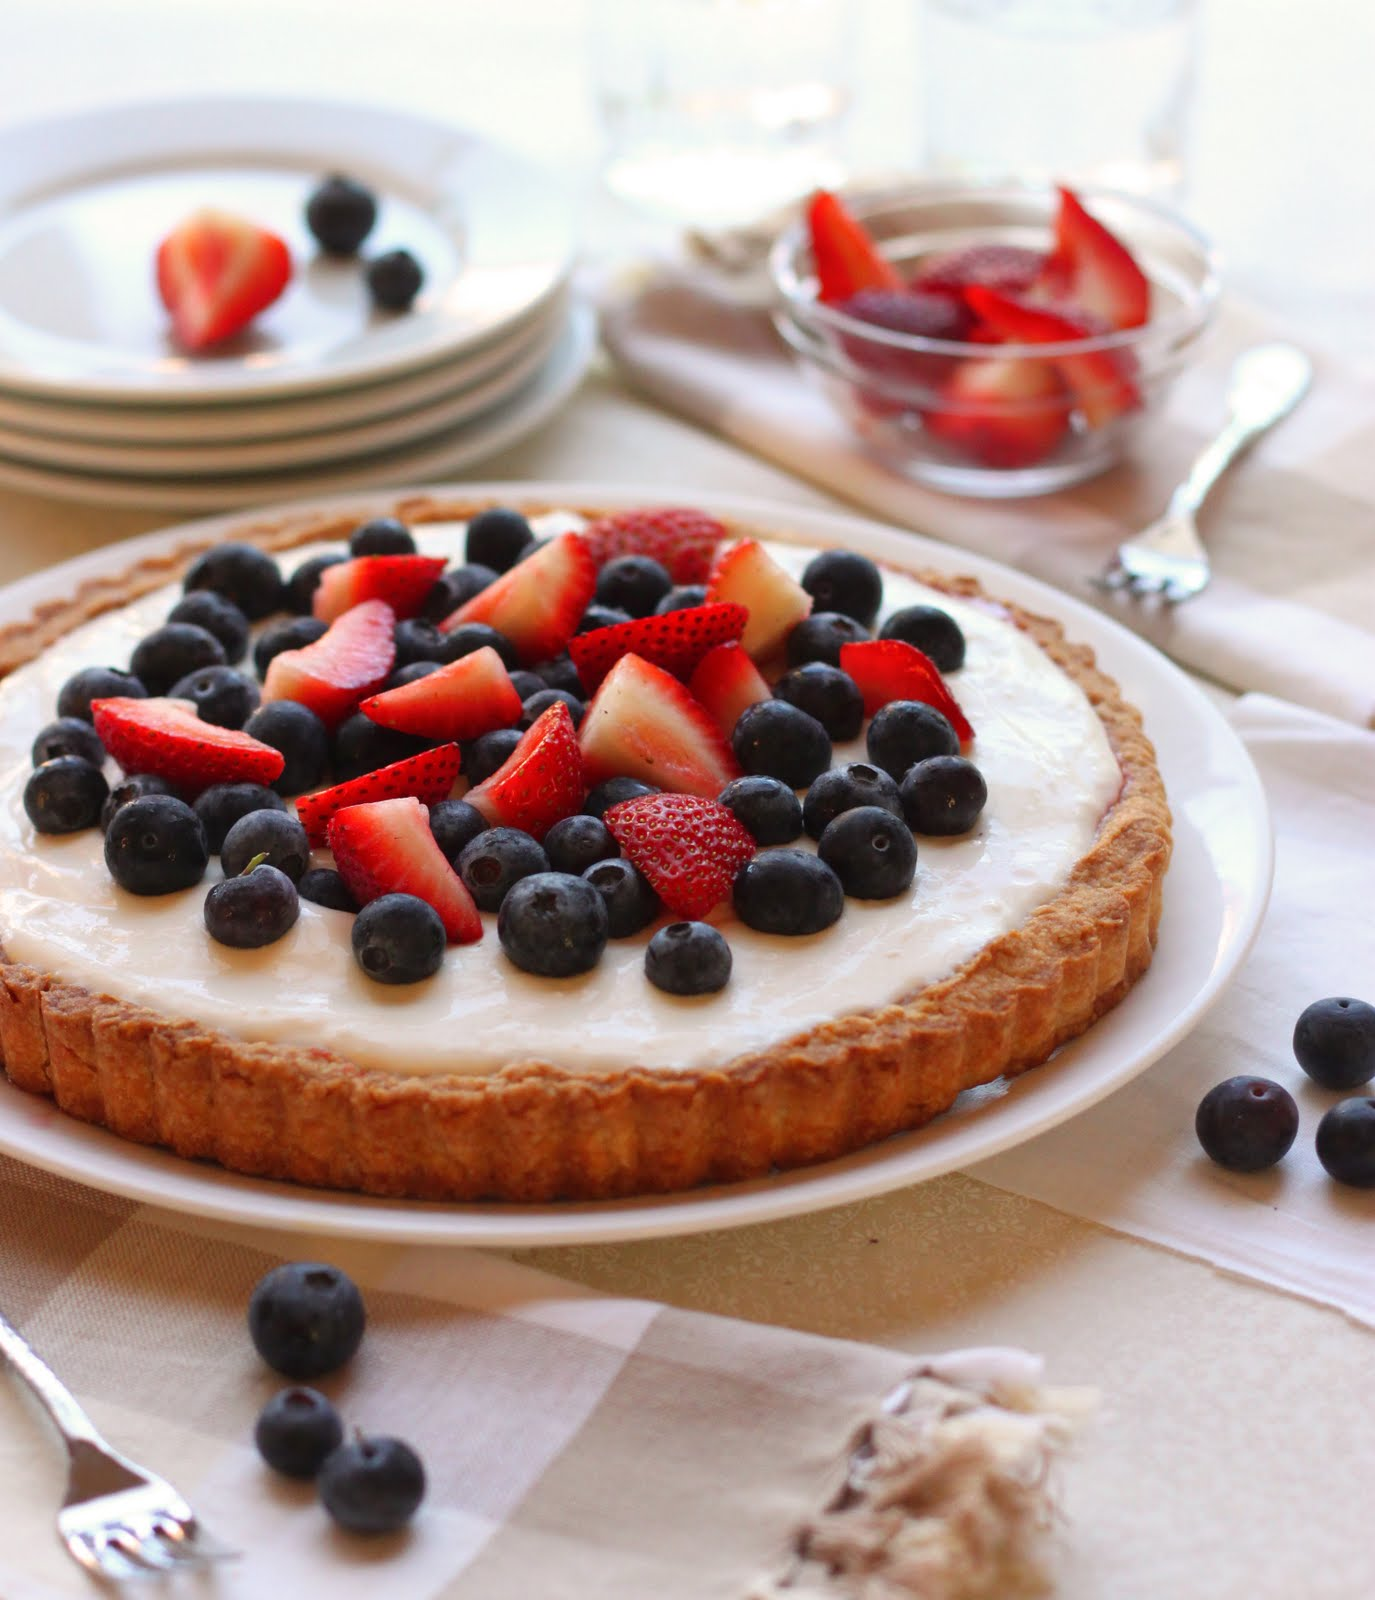 Strawberry-Blueberry Tart Recipe — Dishmaps